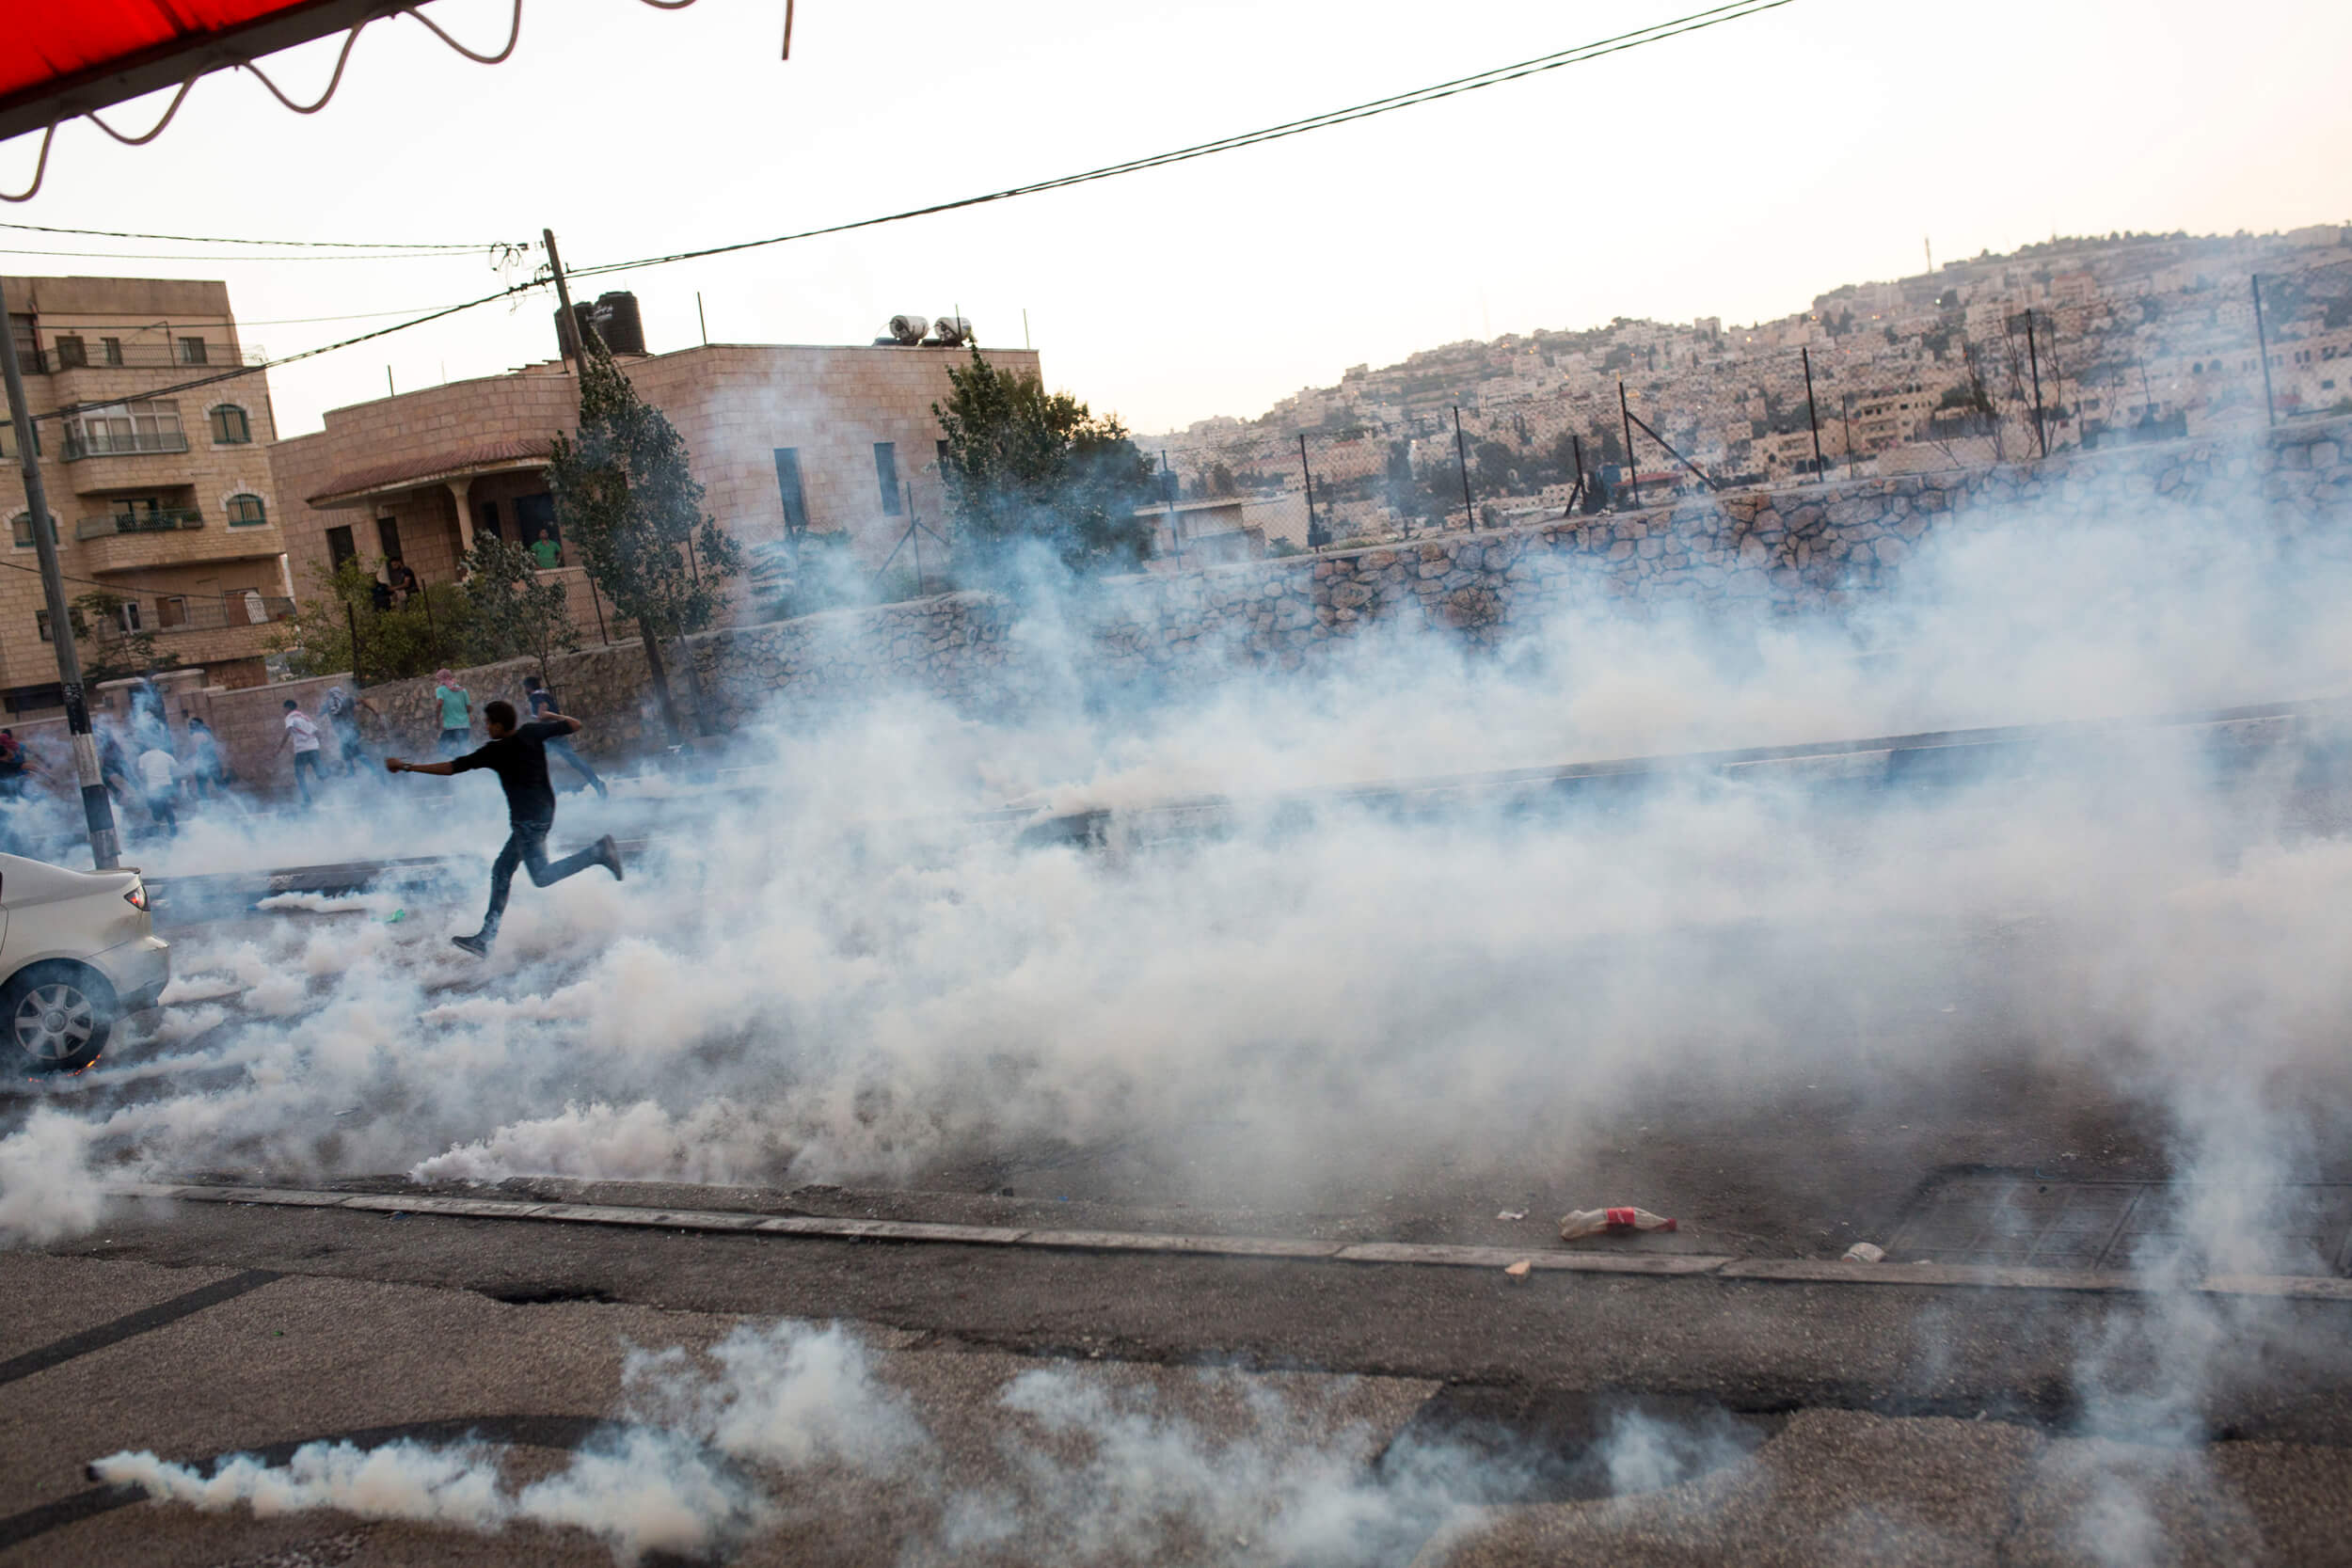 The Israeli army used scores of tear gas canisters, at times covering the Al-Azzeh refugee camp with clouds of tear gas. Some of the tear gas were shot directly at the head level of the protesters. (Photo: Anne Paq)